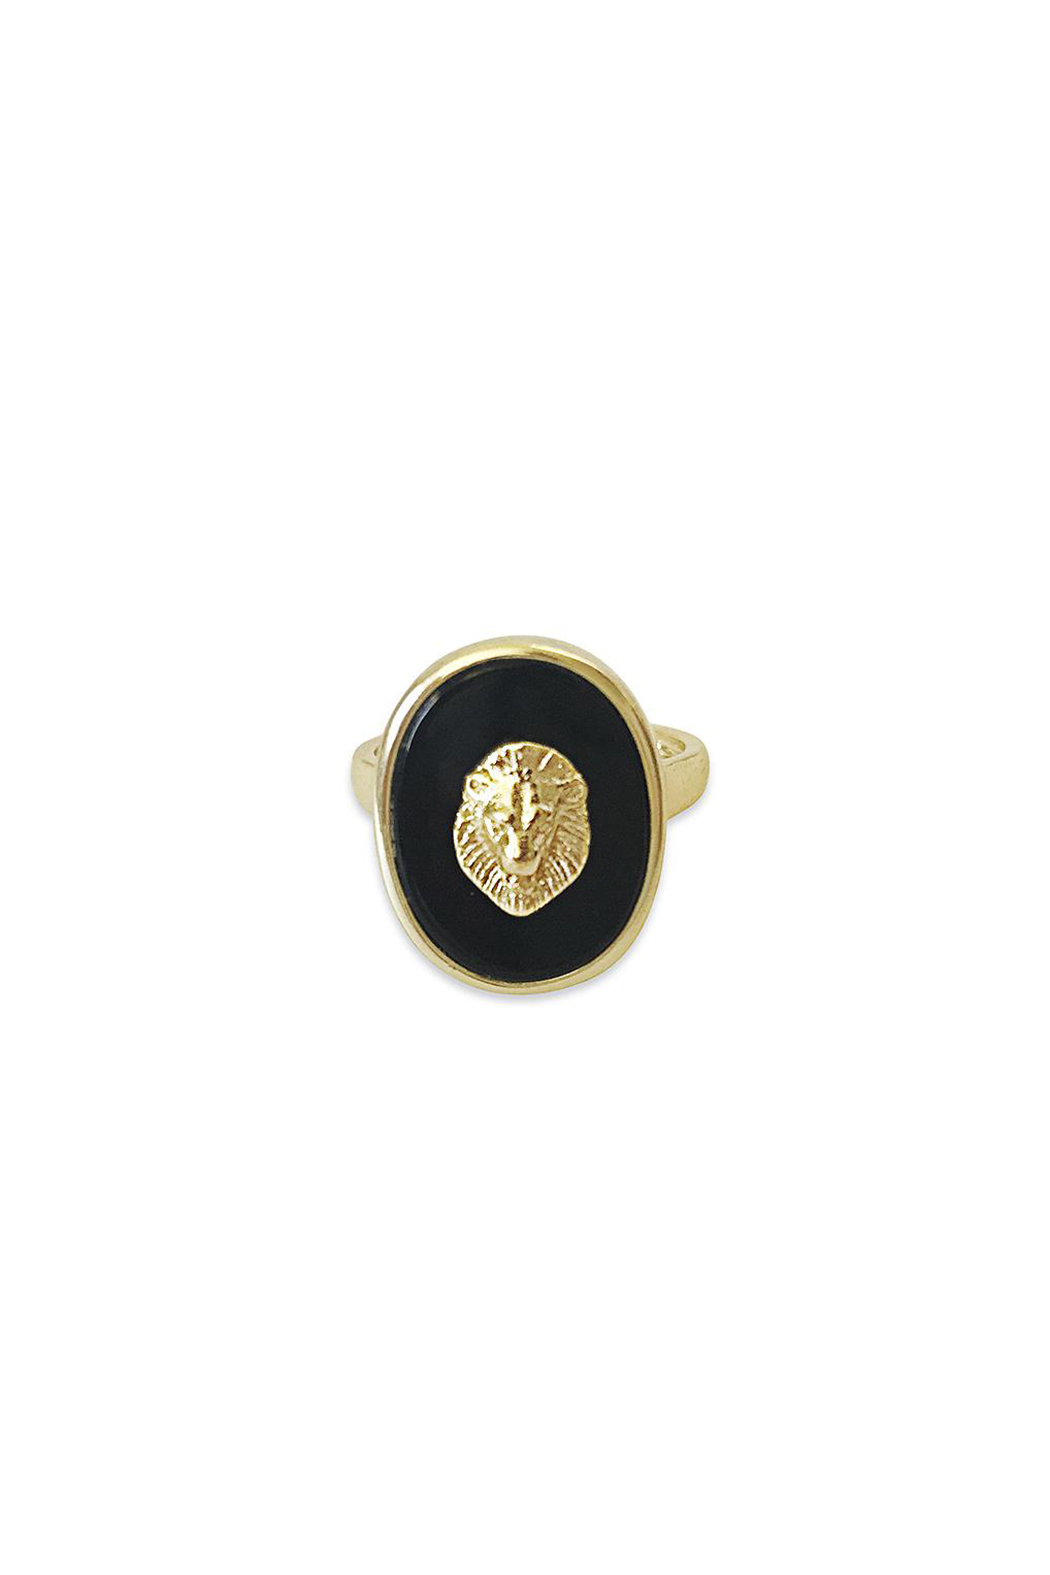 Erin Fader Jewelry King of Beasts Cameo Ring - Main Image